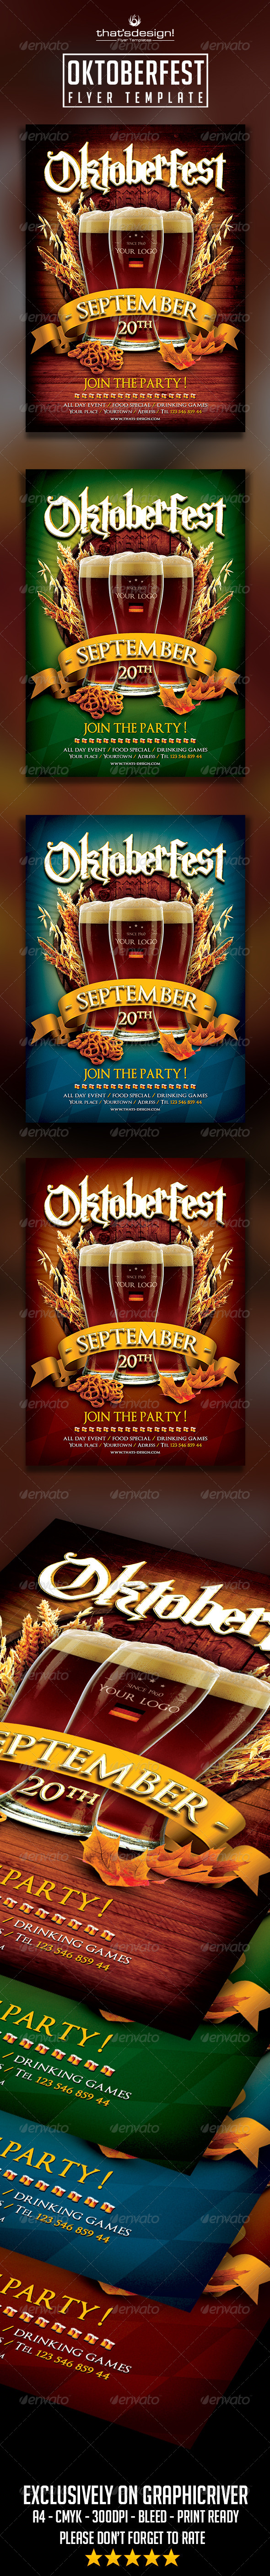 GraphicRiver Oktoberfest Flyer Template 8590458